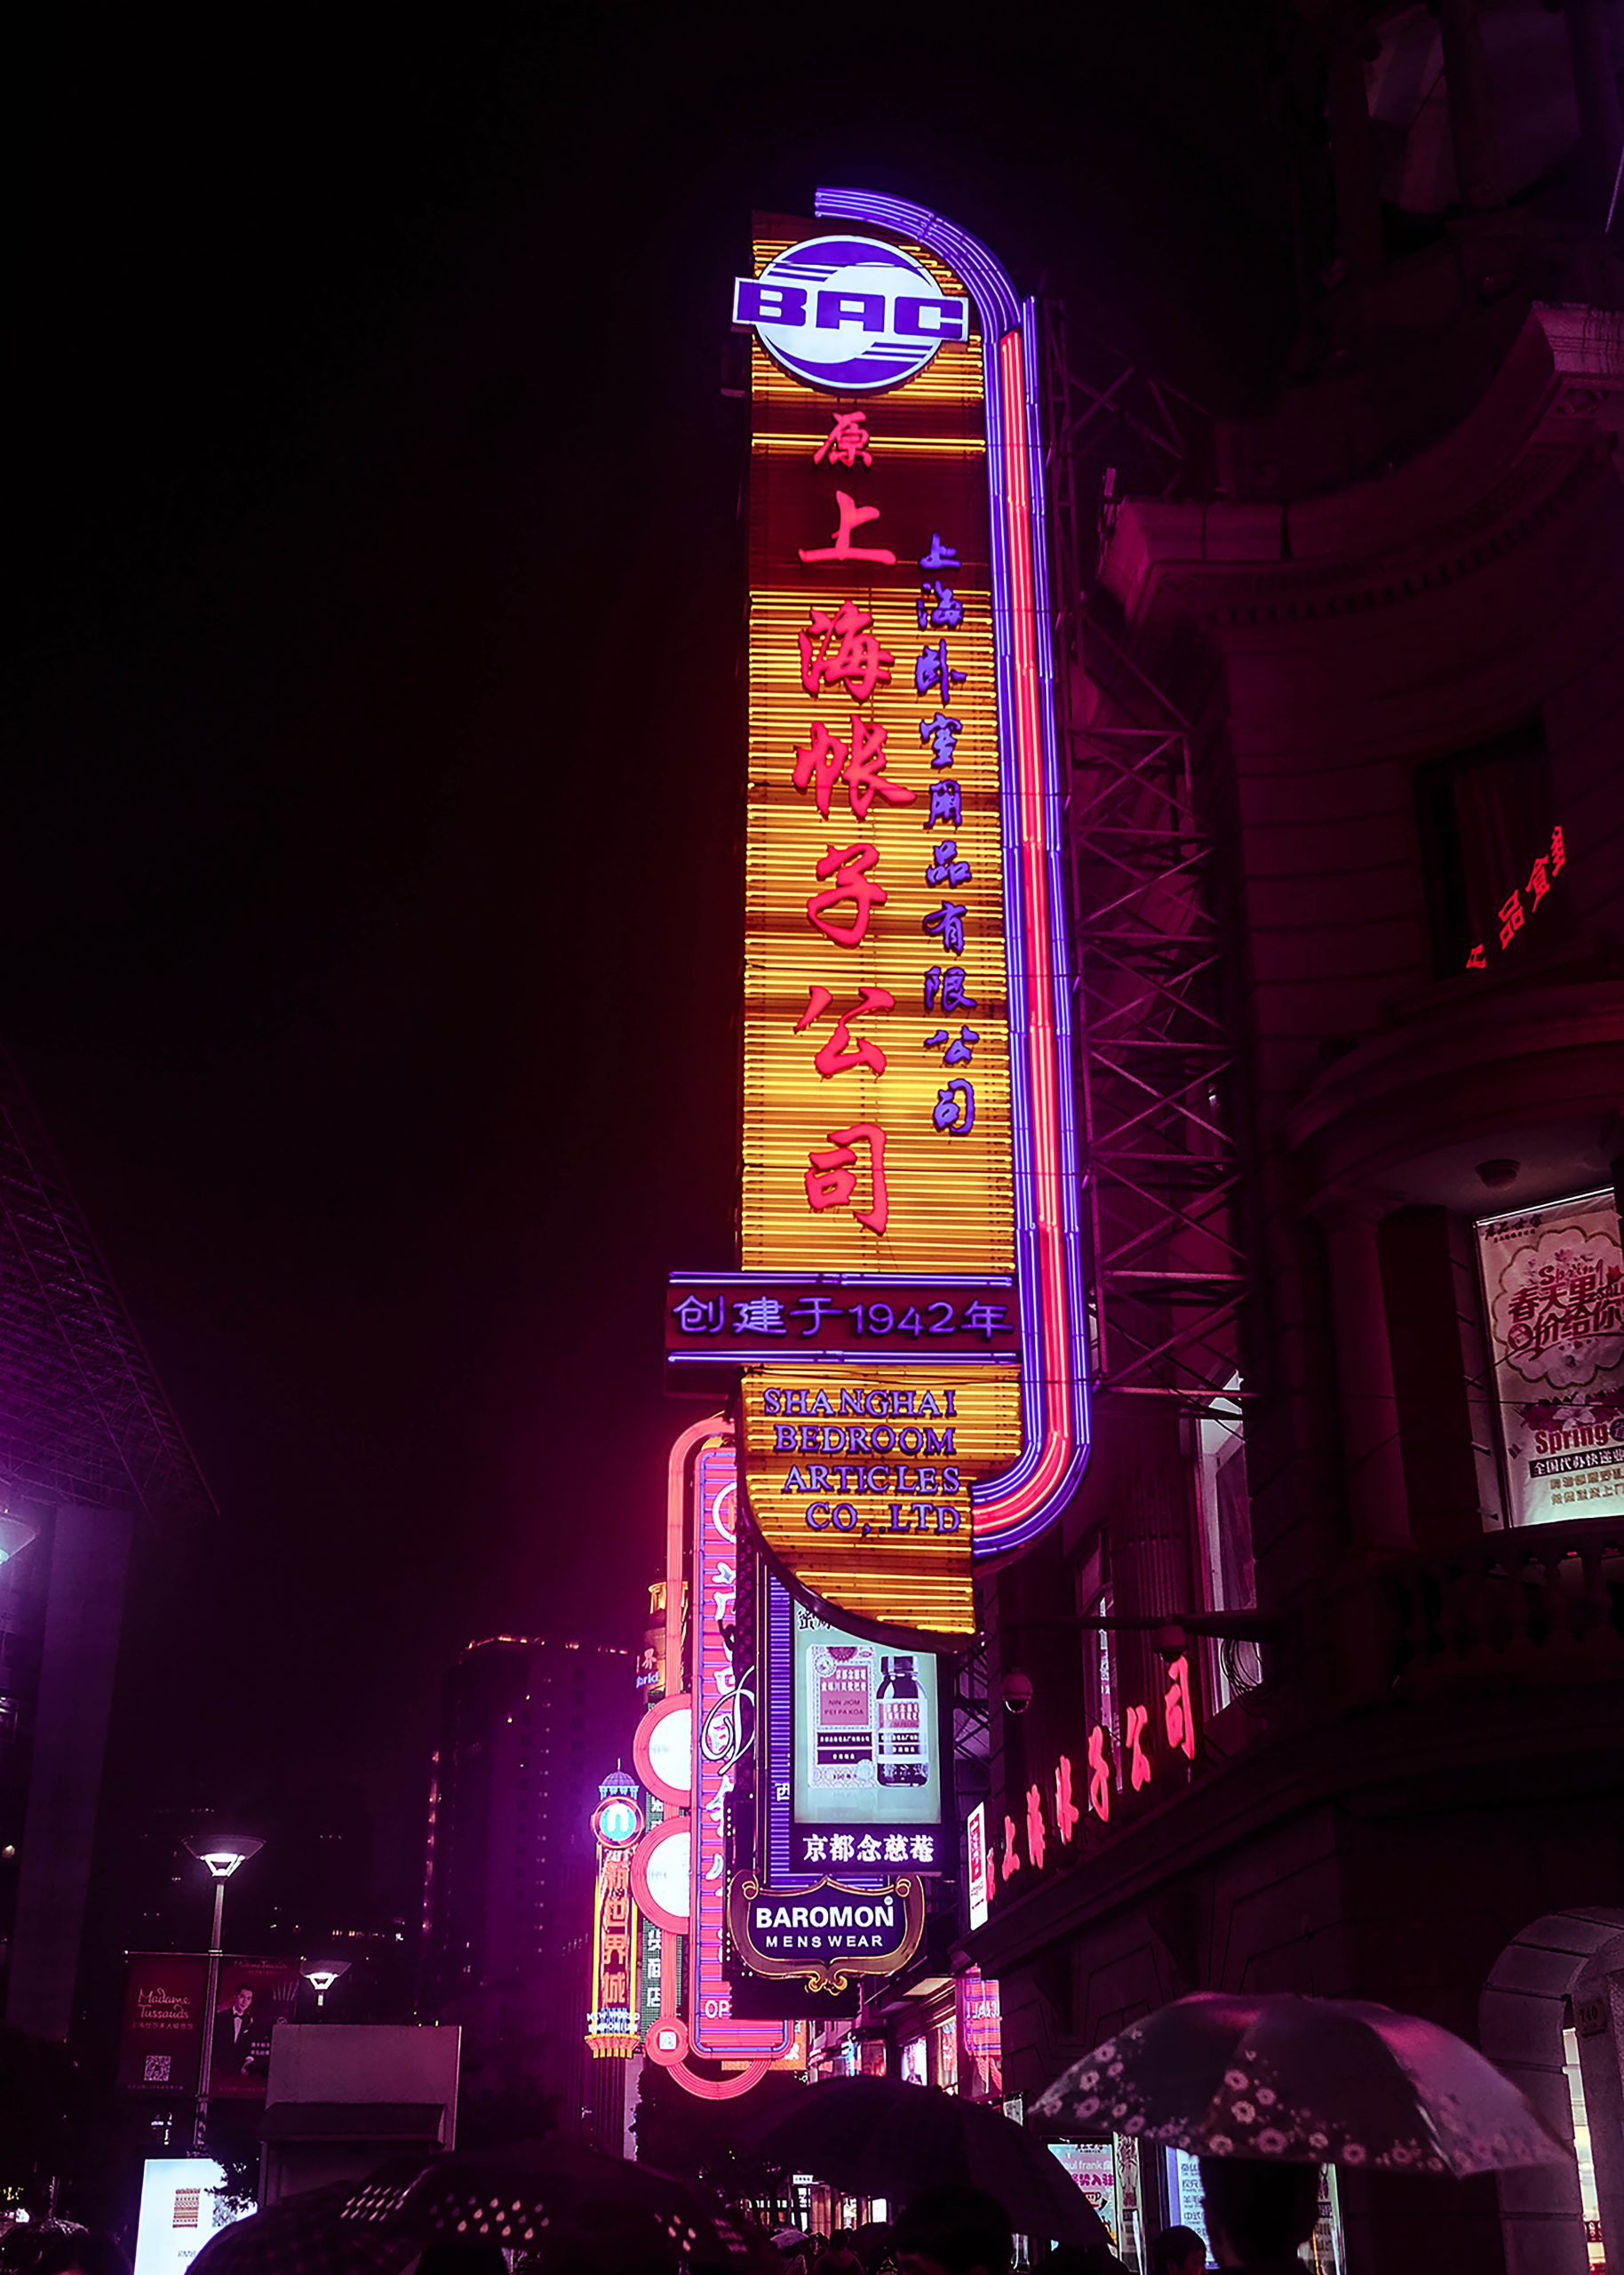 elisabetta riccio - neon signs of stores in shanghai city